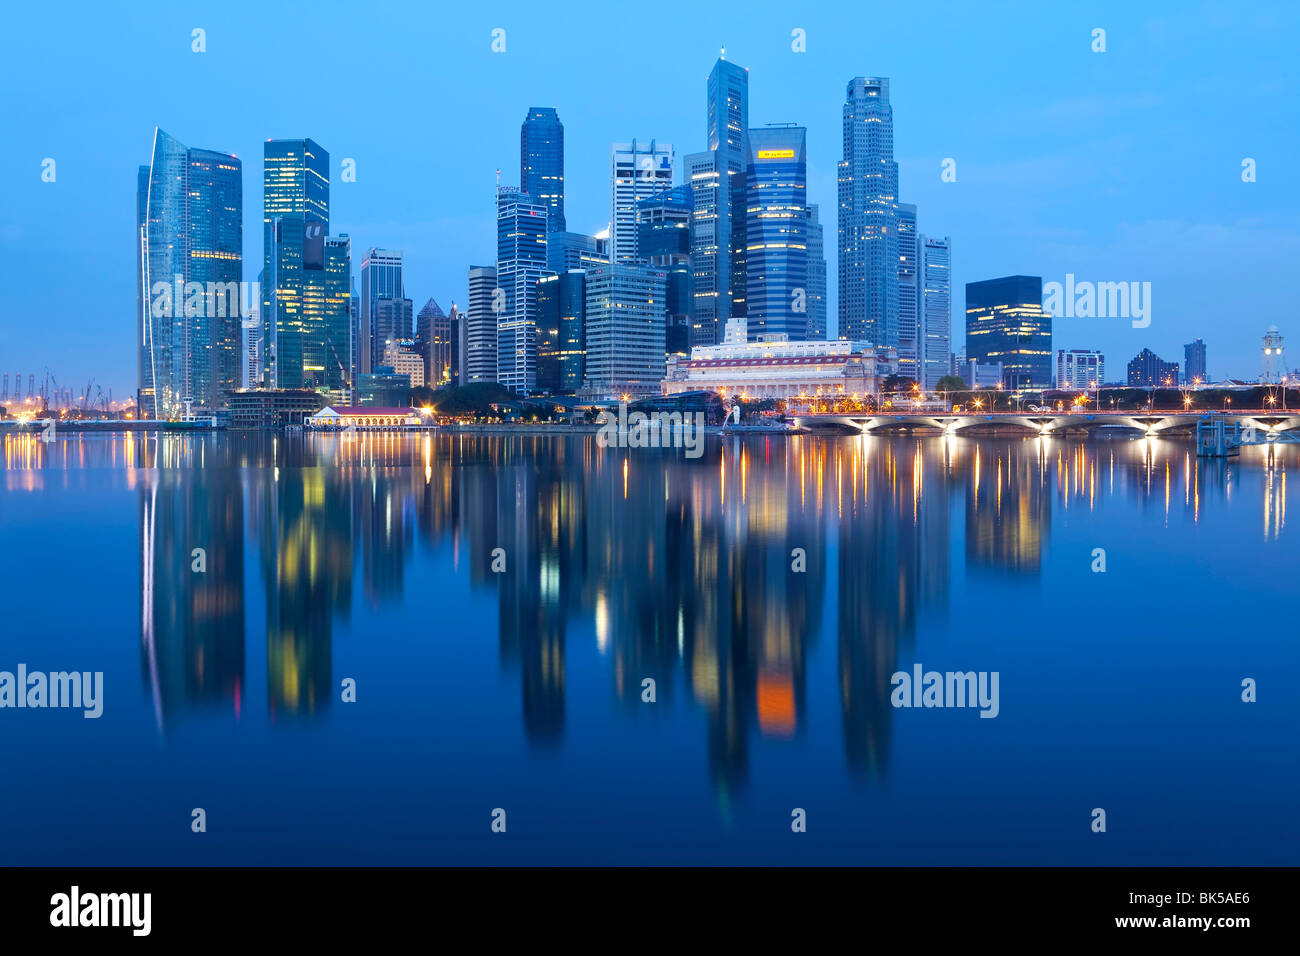 Skyline et le quartier financier, à l'aube, à Singapour, en Asie du Sud-Est, l'Asie Photo Stock